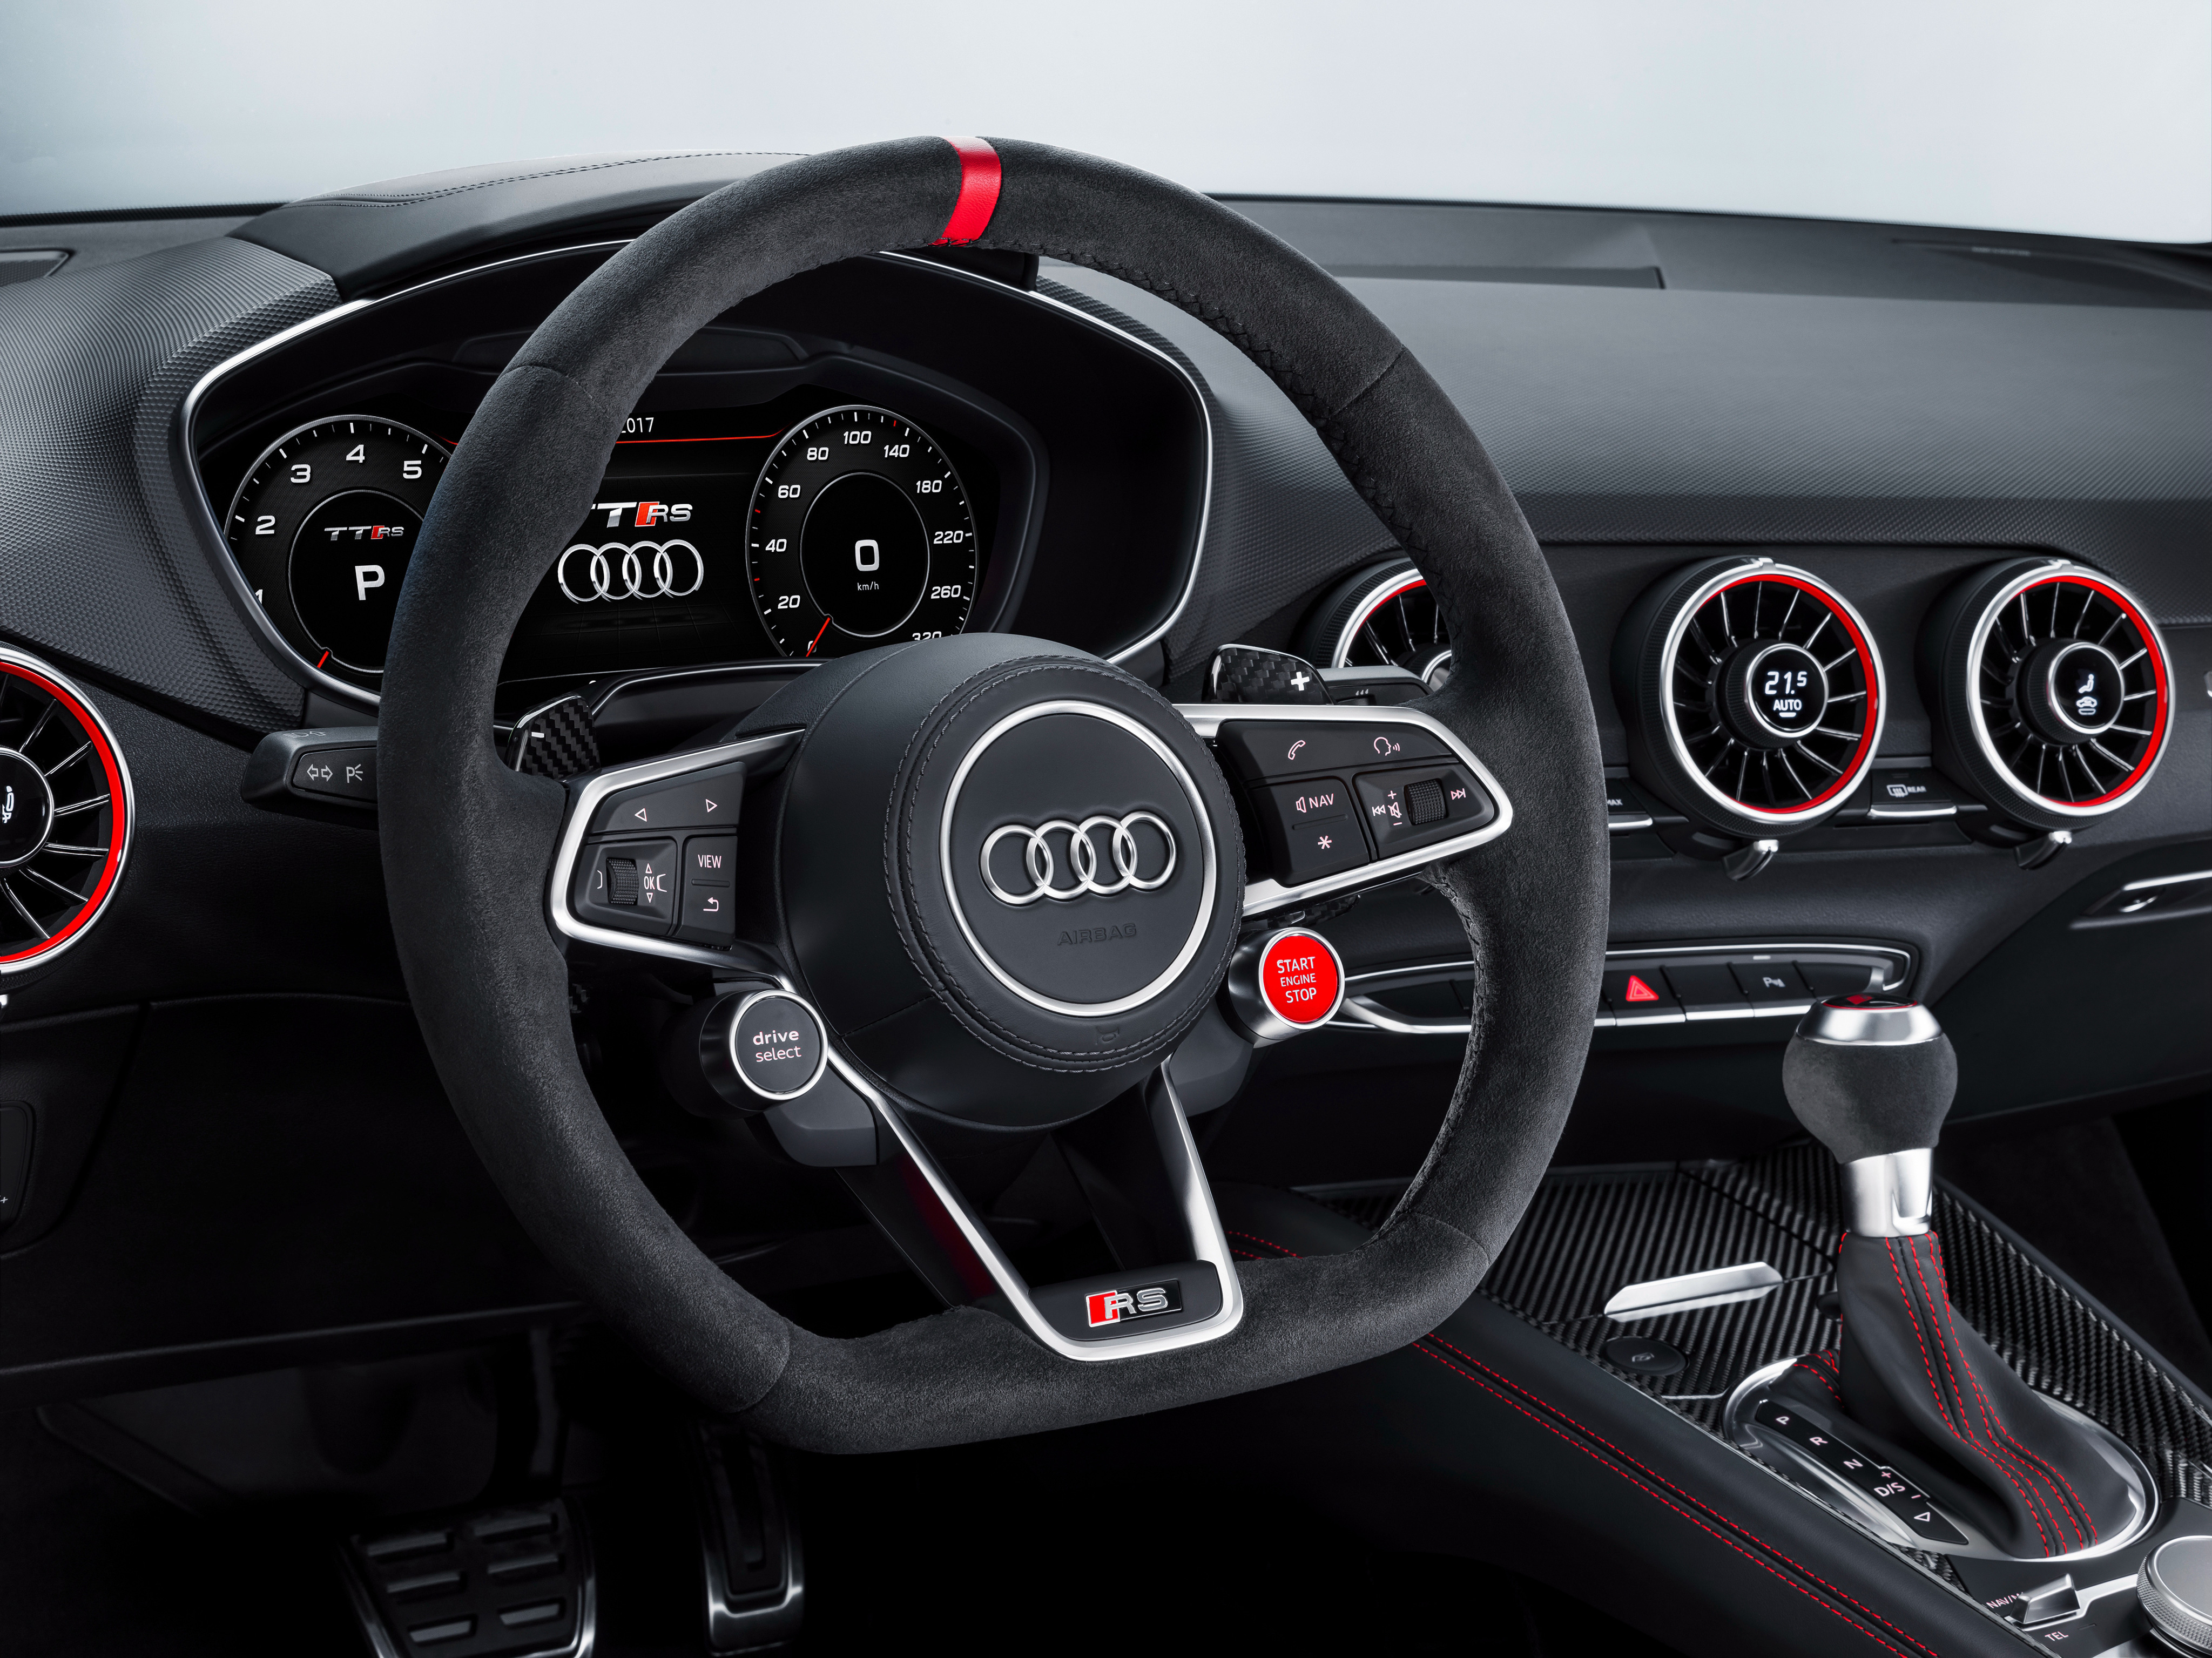 Audi TT RS 2017 Interior, HD Cars, 4k Wallpapers, Images